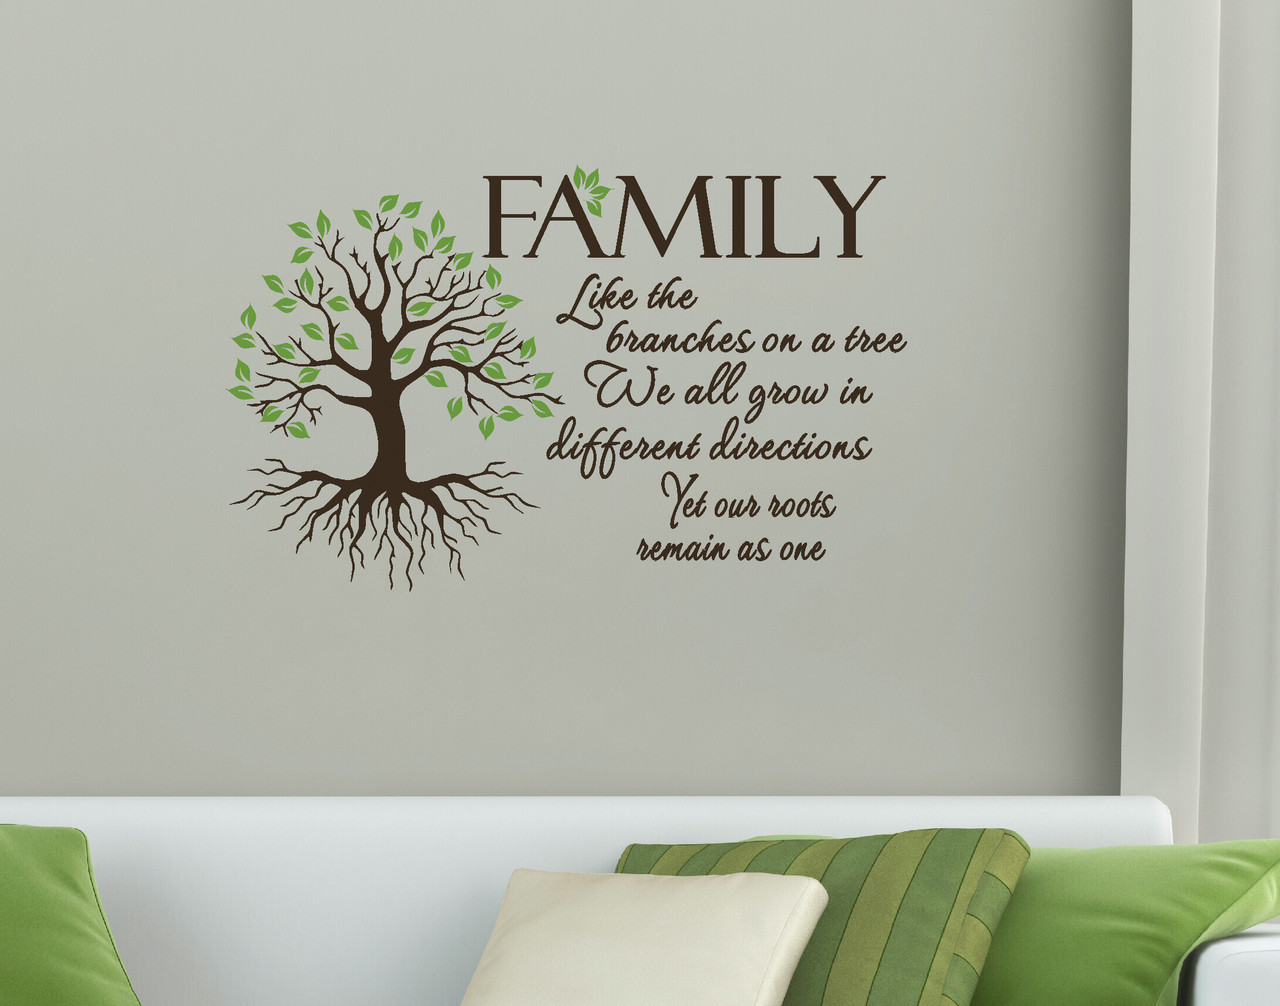 Inspirational Wall Stickers Quotes Family Quote Like Branches On A Tree Wall Art Vinyl Decal